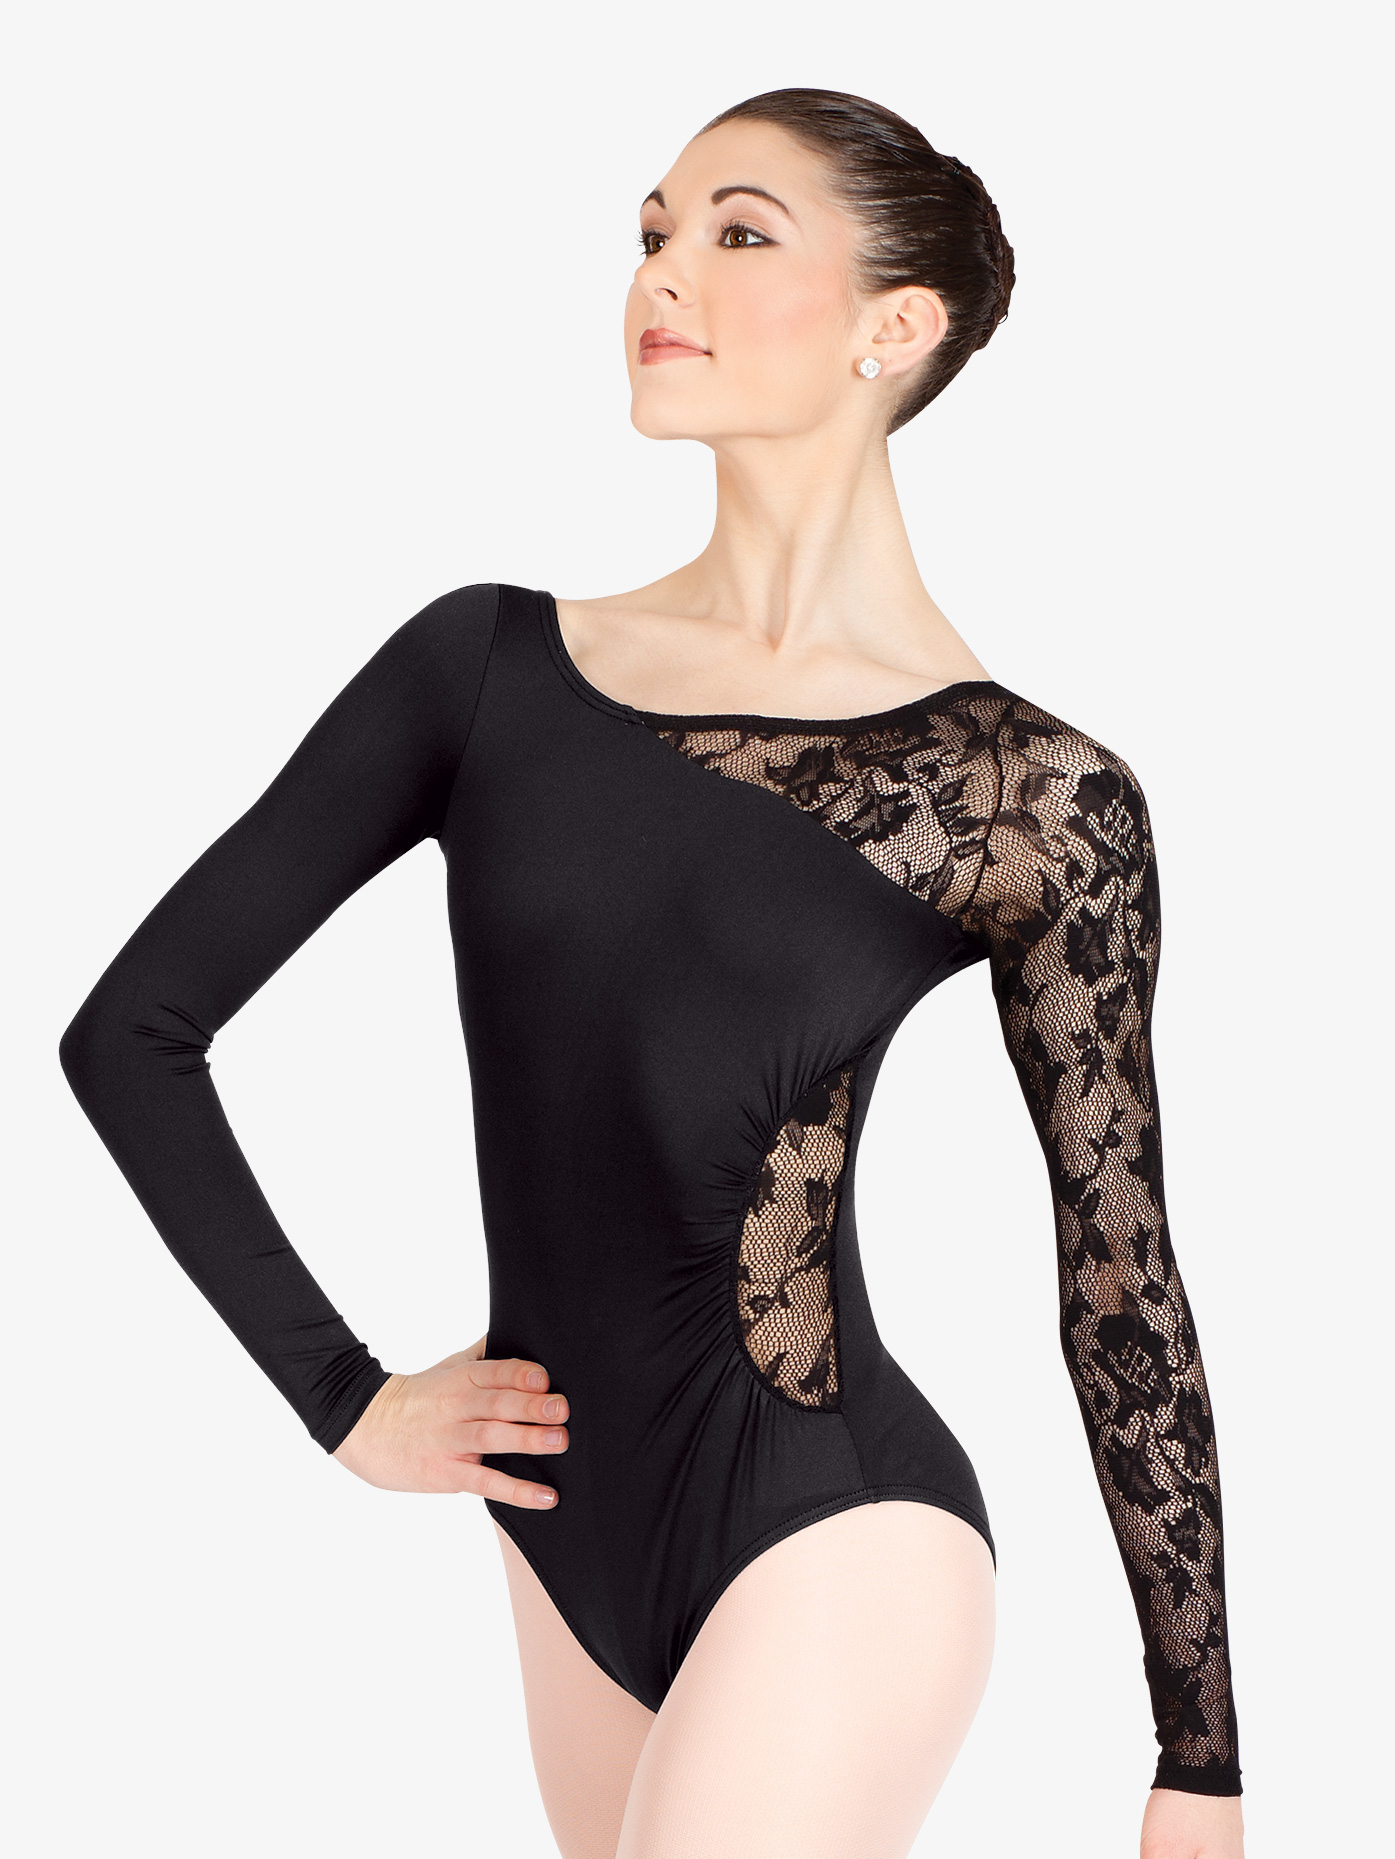 6e0f1662e3fc Adult Long Sleeve Leotard with Lace Sleeve and Insert - Style No N8650. Loading  zoom